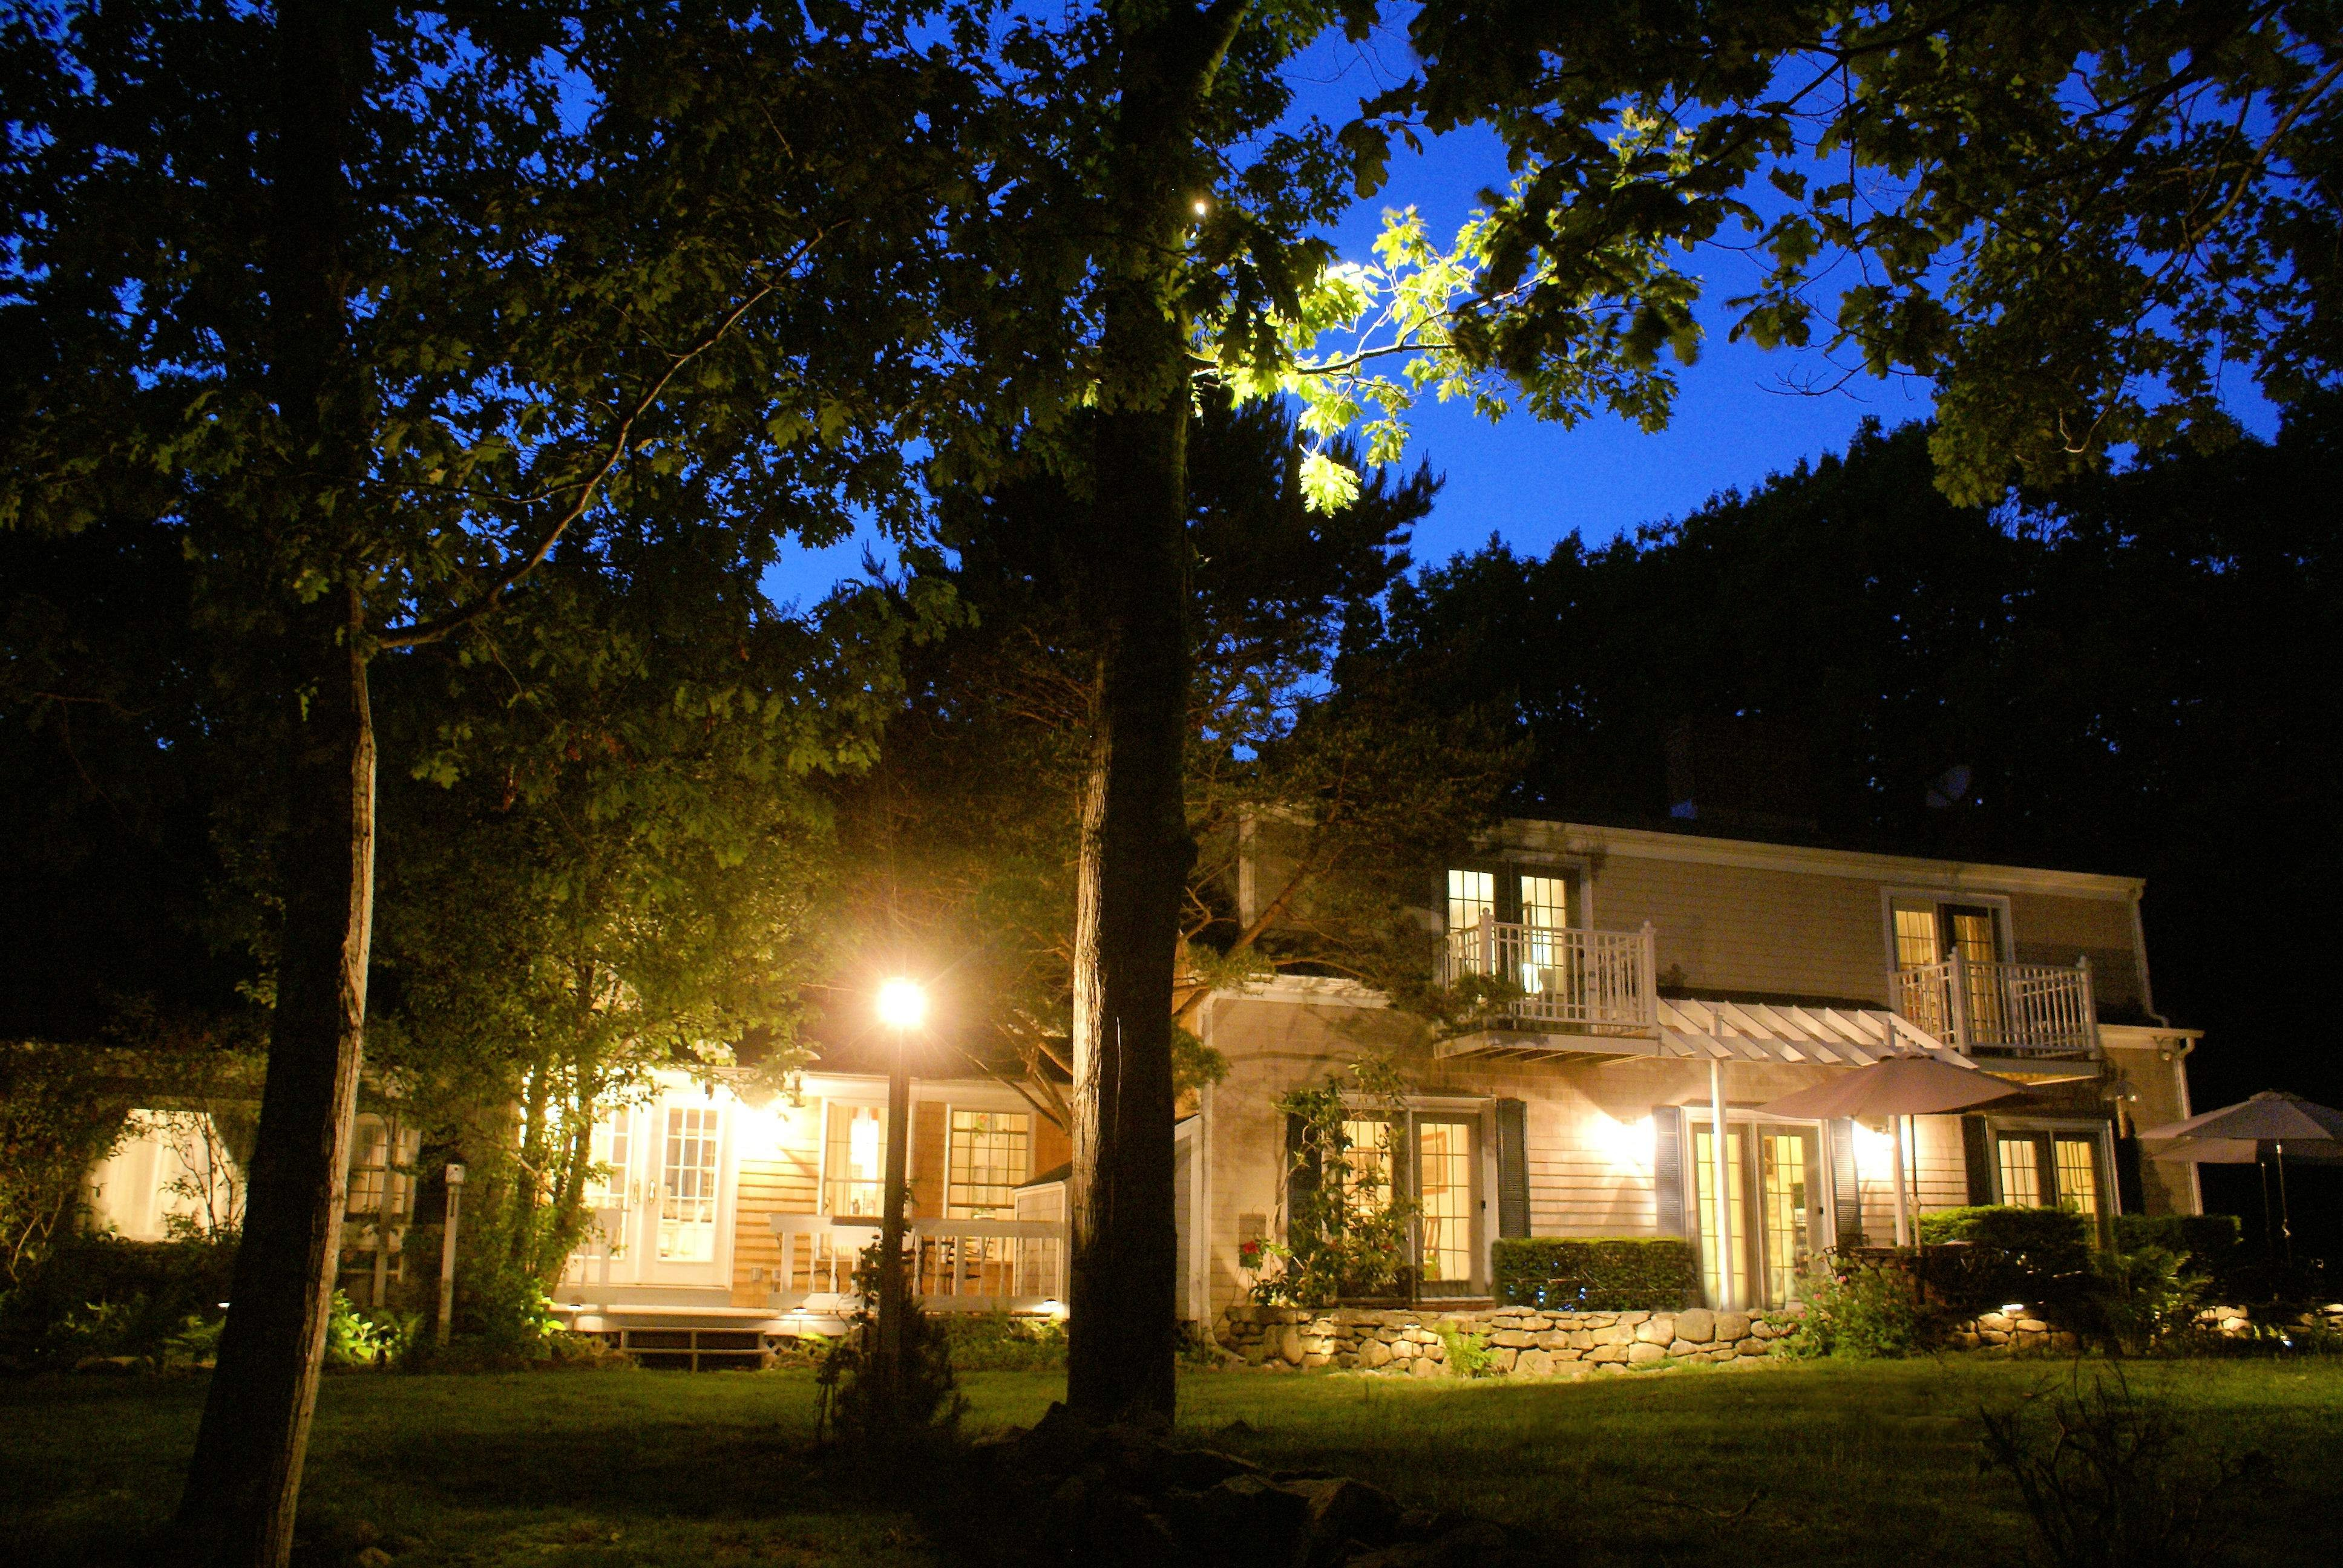 View of the subject property on a summer night. The grounds of the whole property (front and back, up and down a 1000' driveway, and at the driveway entrance) is illuminated by over 100 ground lights.